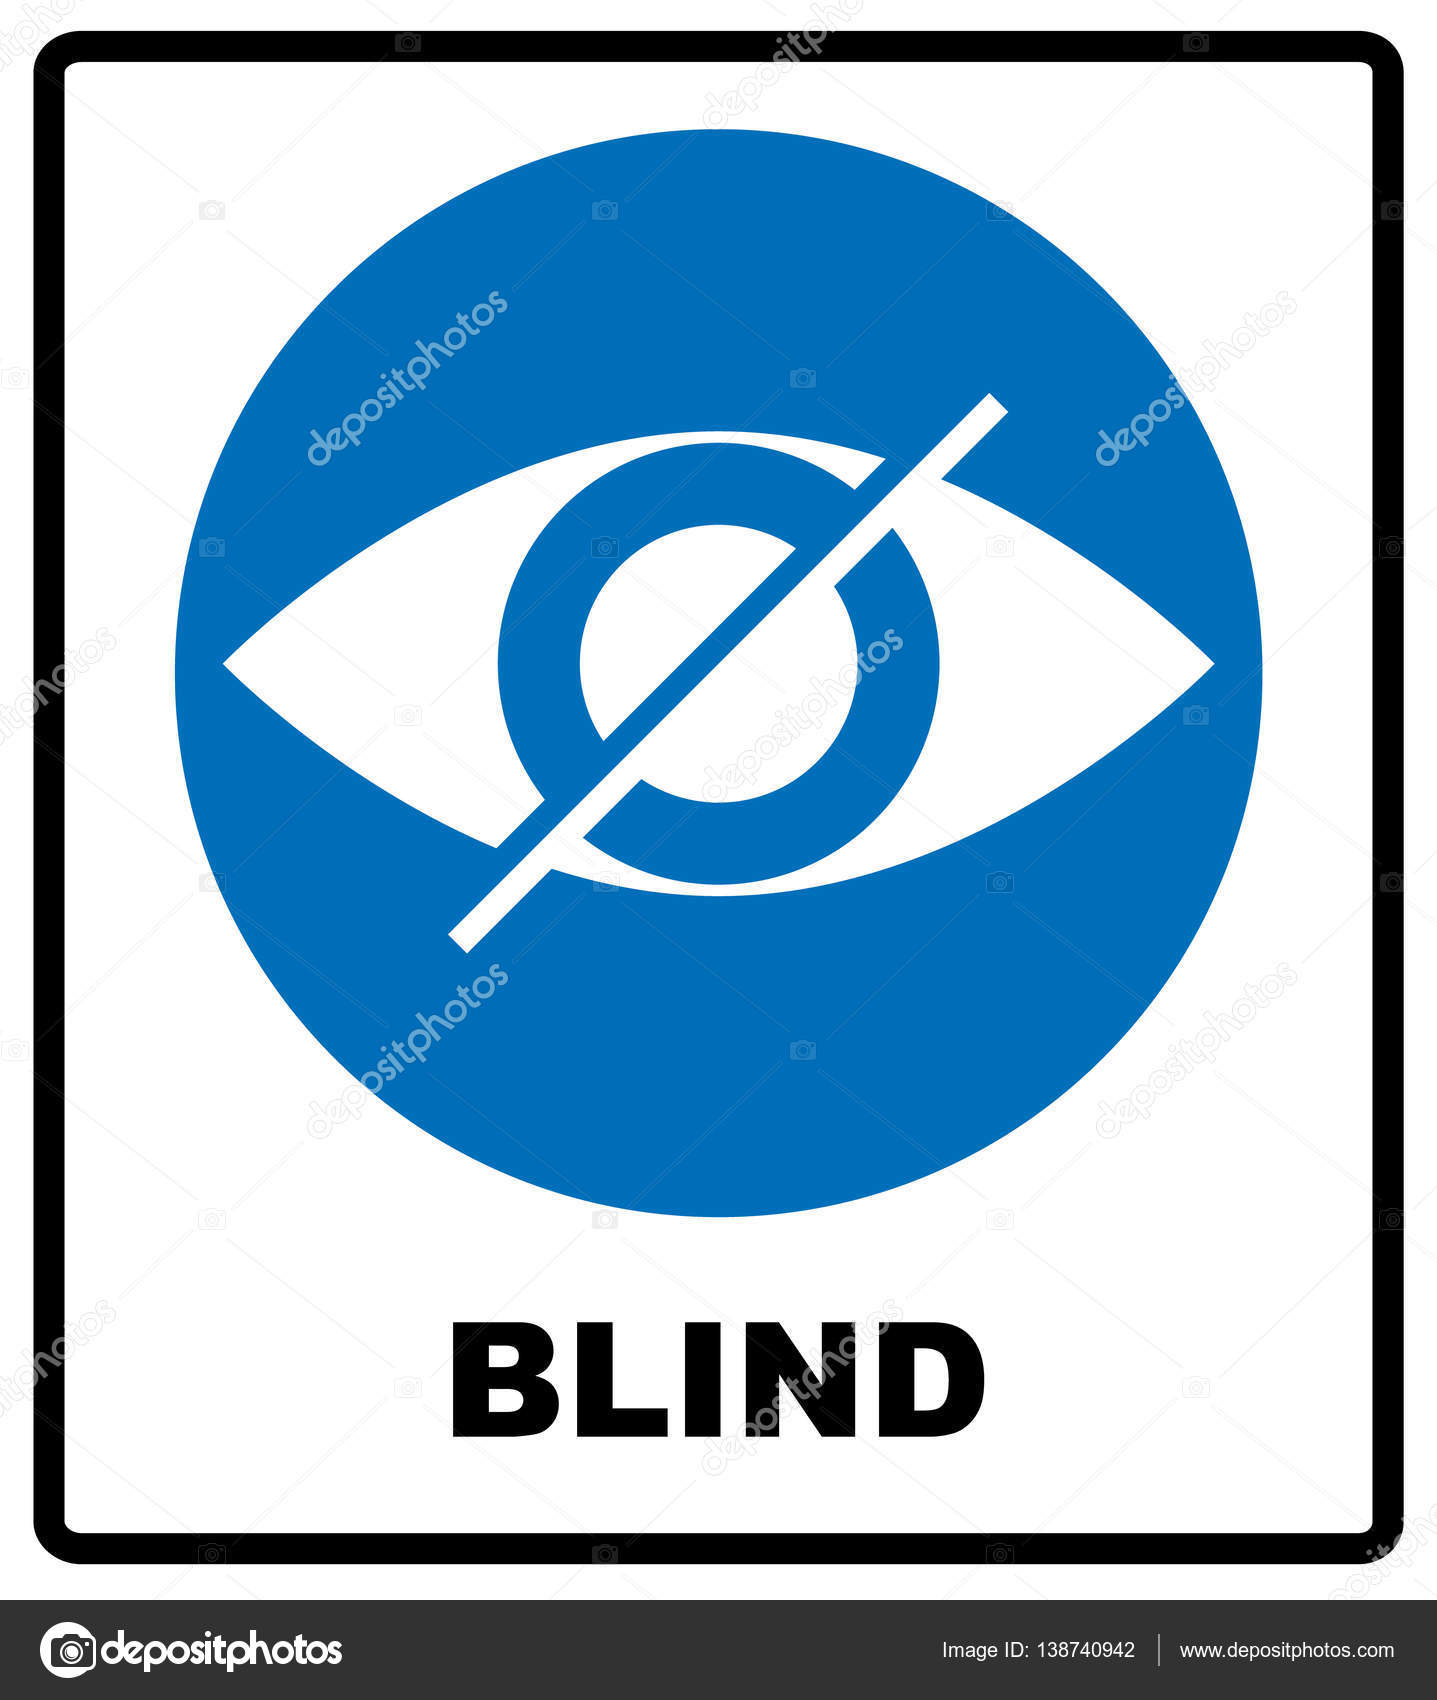 Blind sign in blue circle, notice label  Crossed eye icon